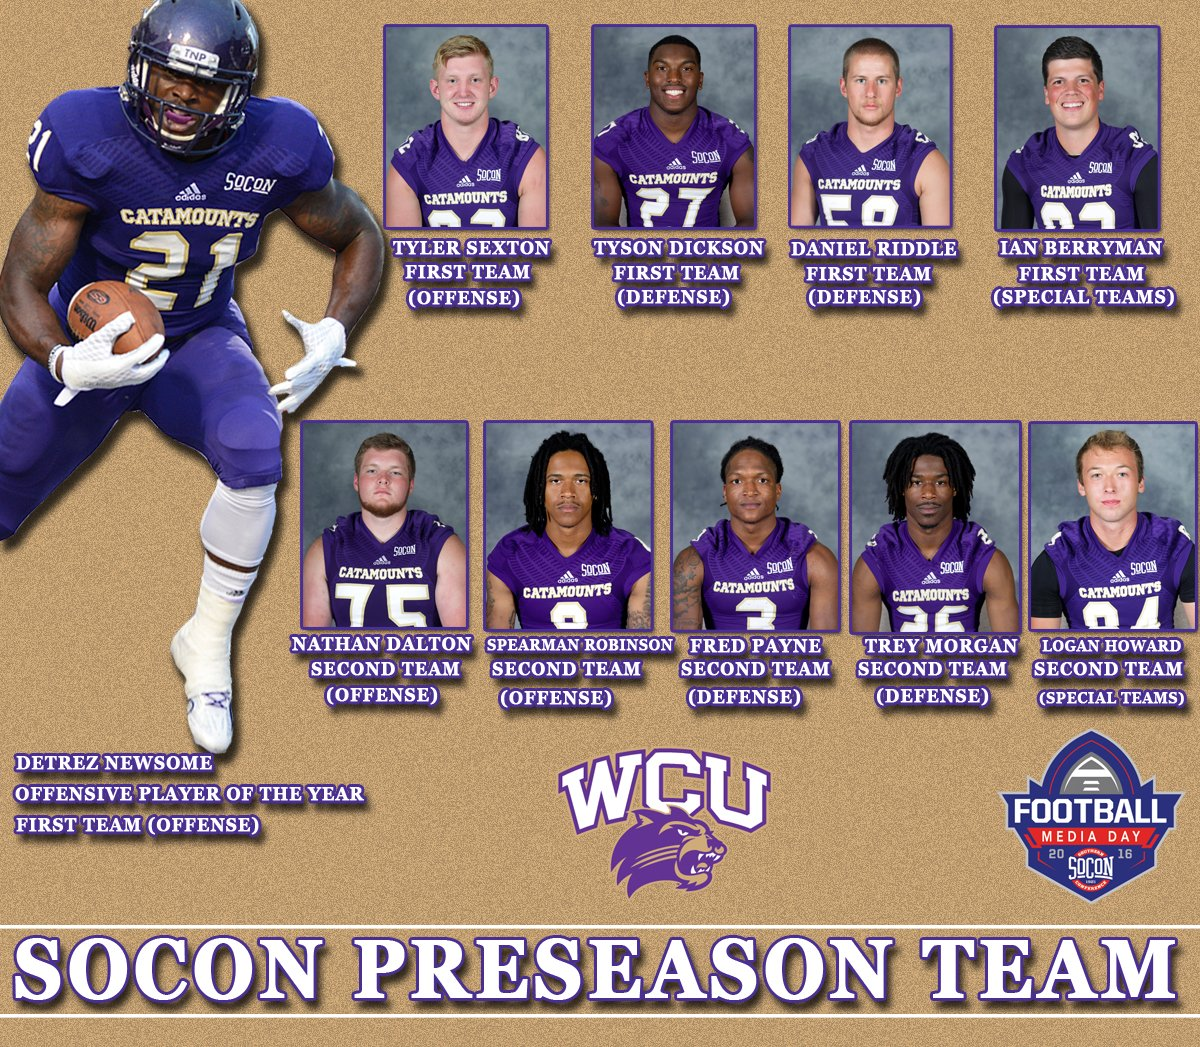 WCU 2016 SoCon Preseason All Conference Team